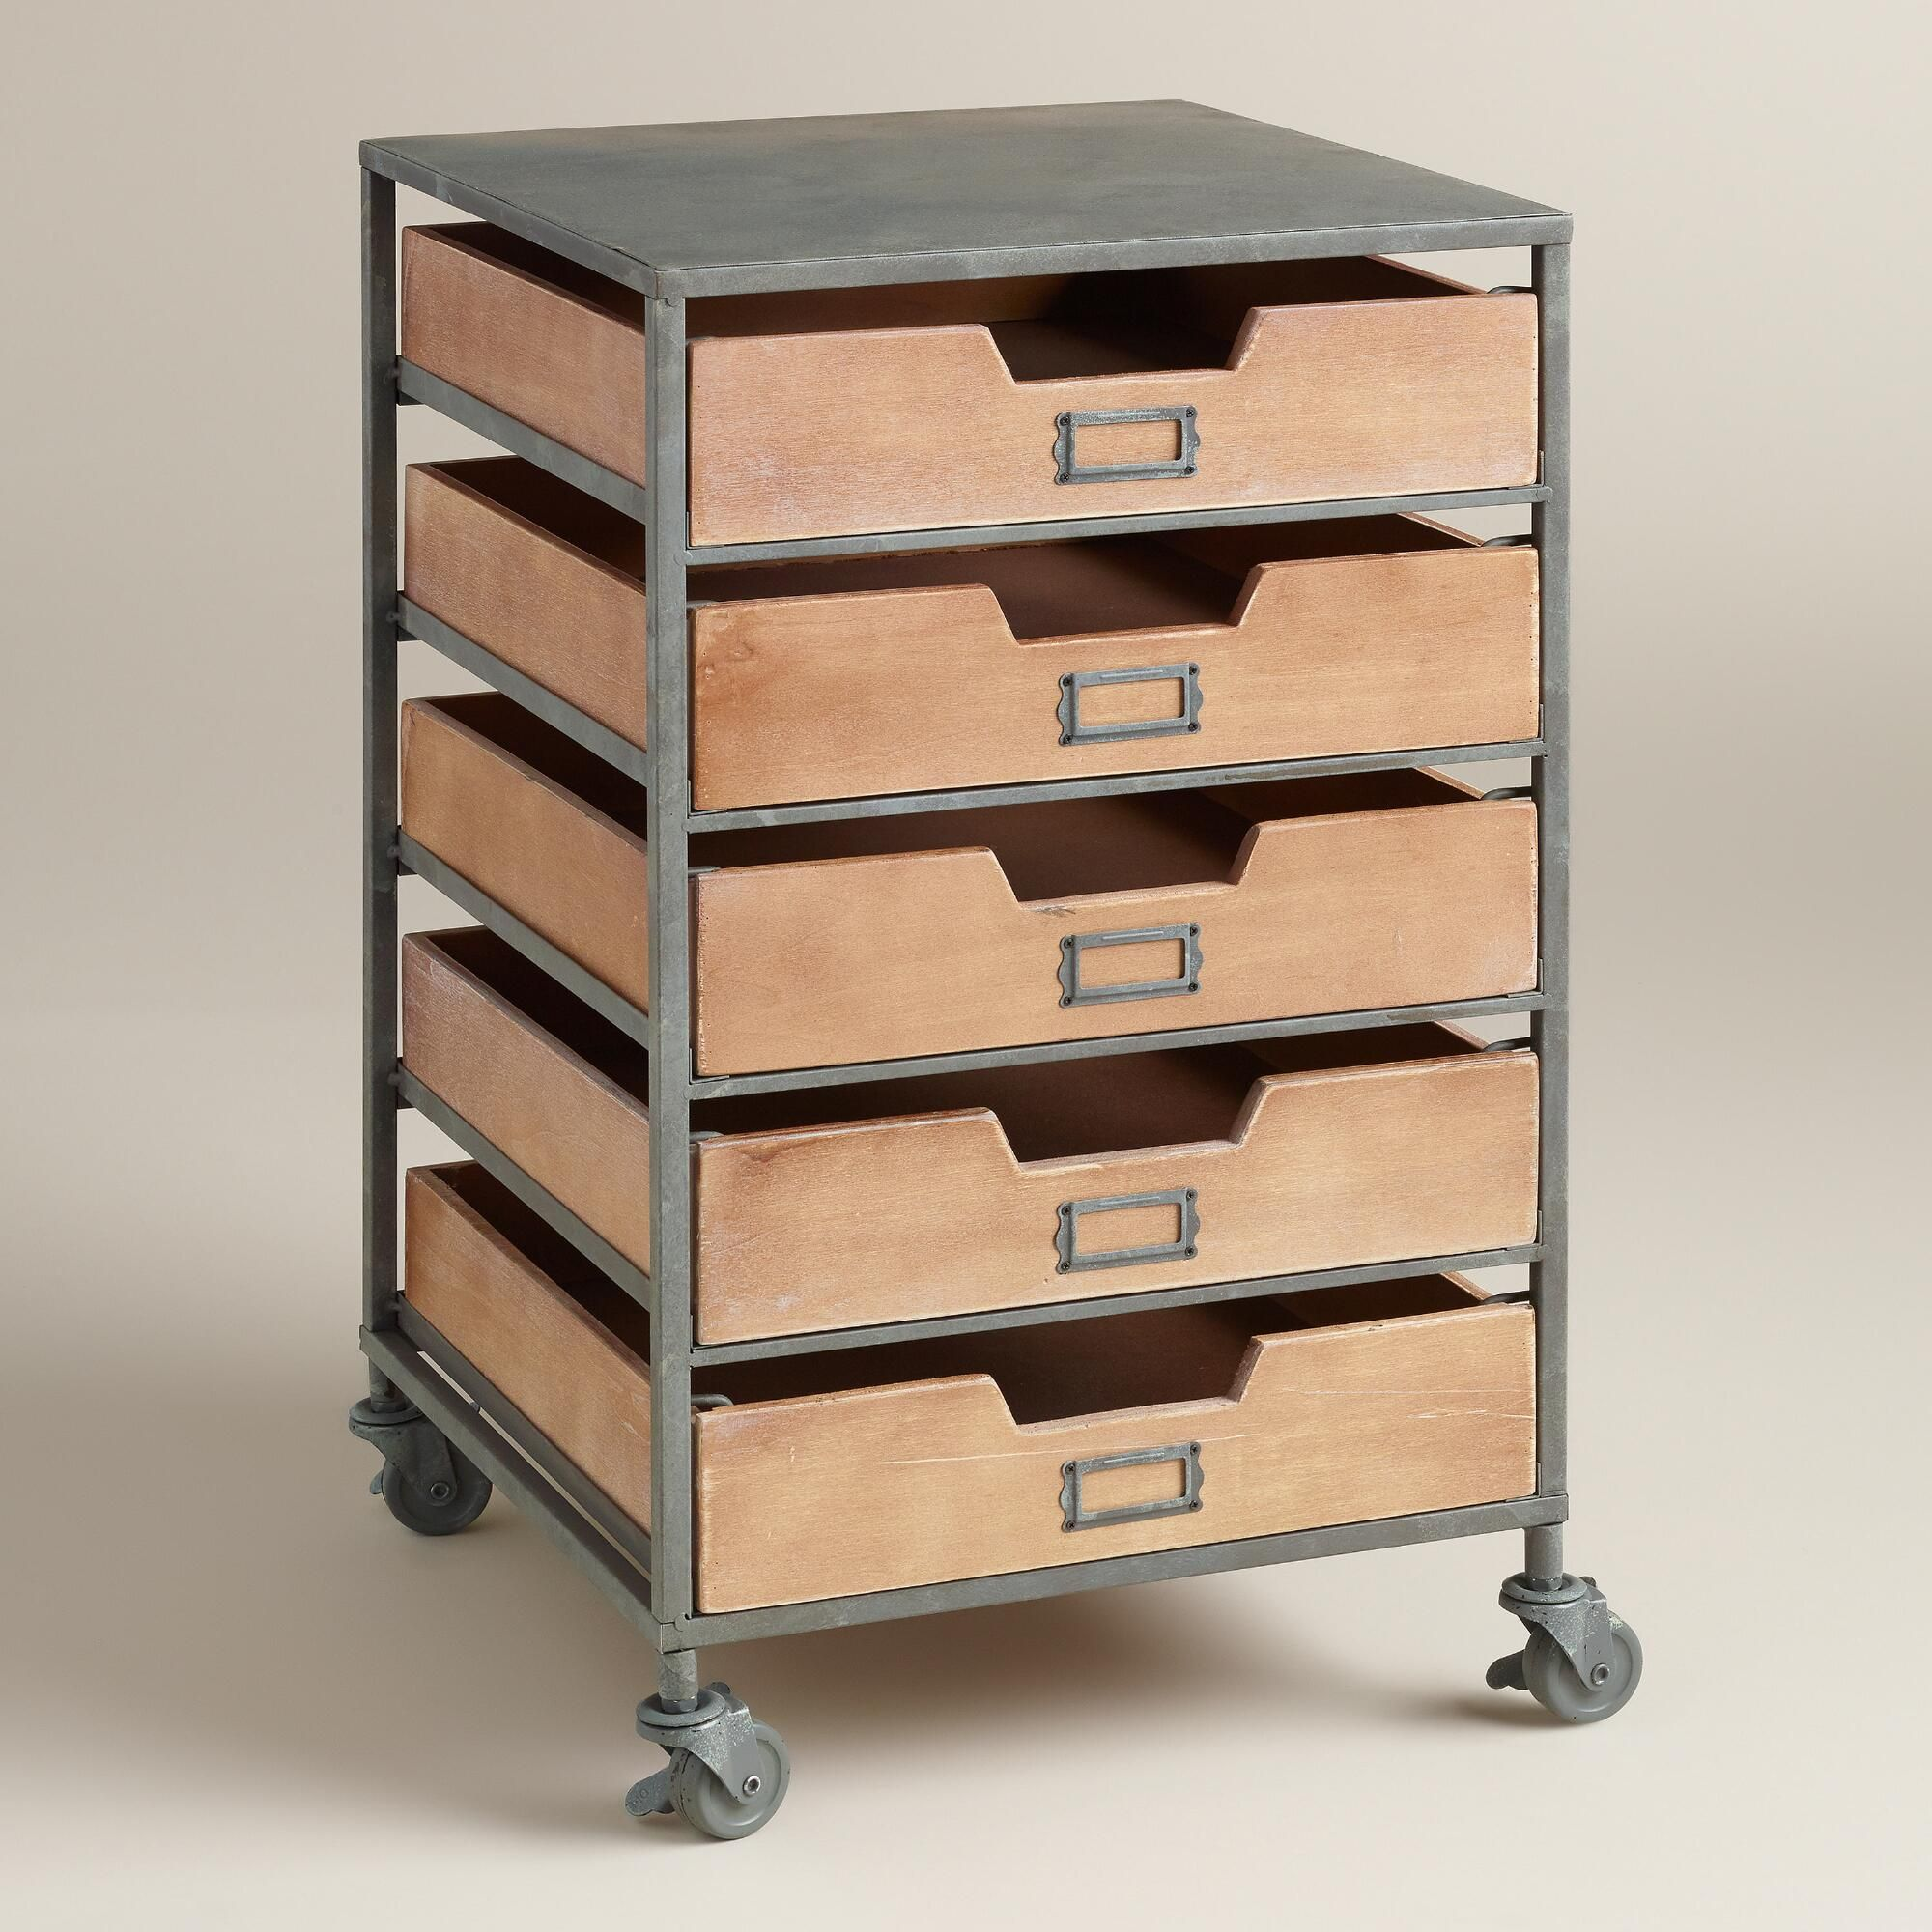 Storage Furniture Papers Office Supplies And Odds Ends All Find Their Proper Place In Our Brushed Metal Cart Furnished With Five Wooden Drawers